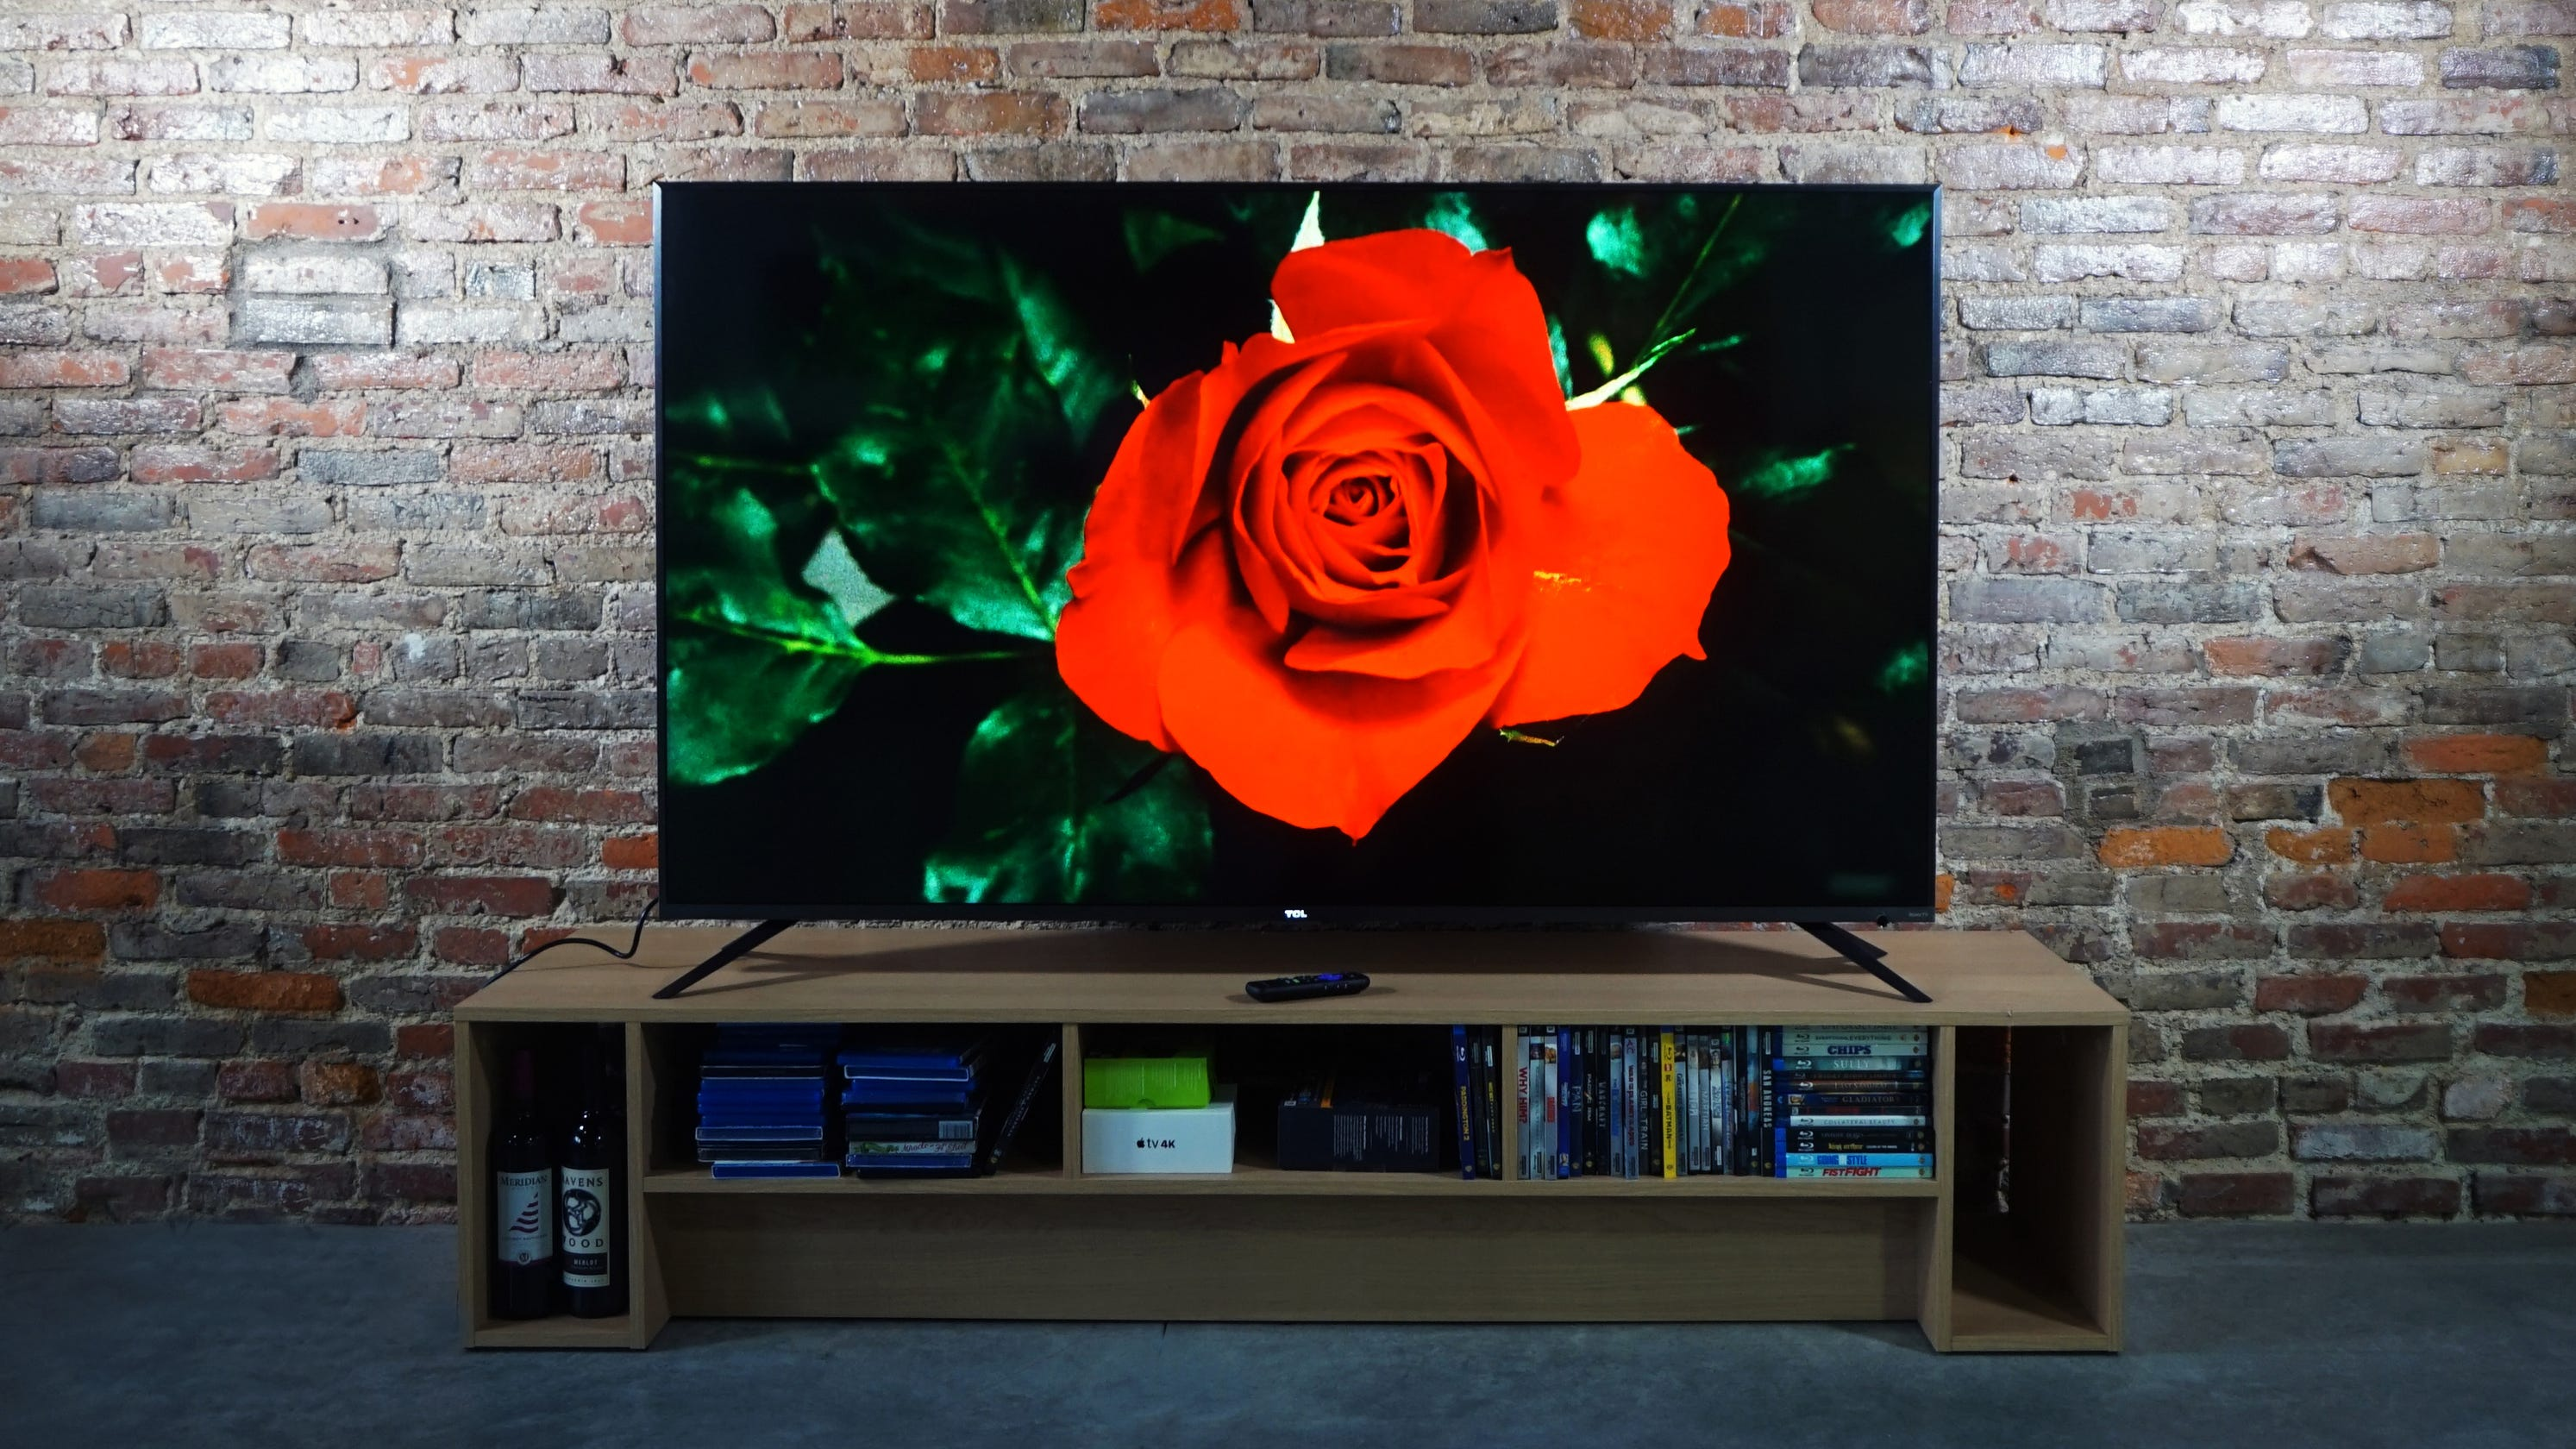 The Best Best Buy Black Friday Deals Of 2018 Playstation 4 Tcl Tvs And More